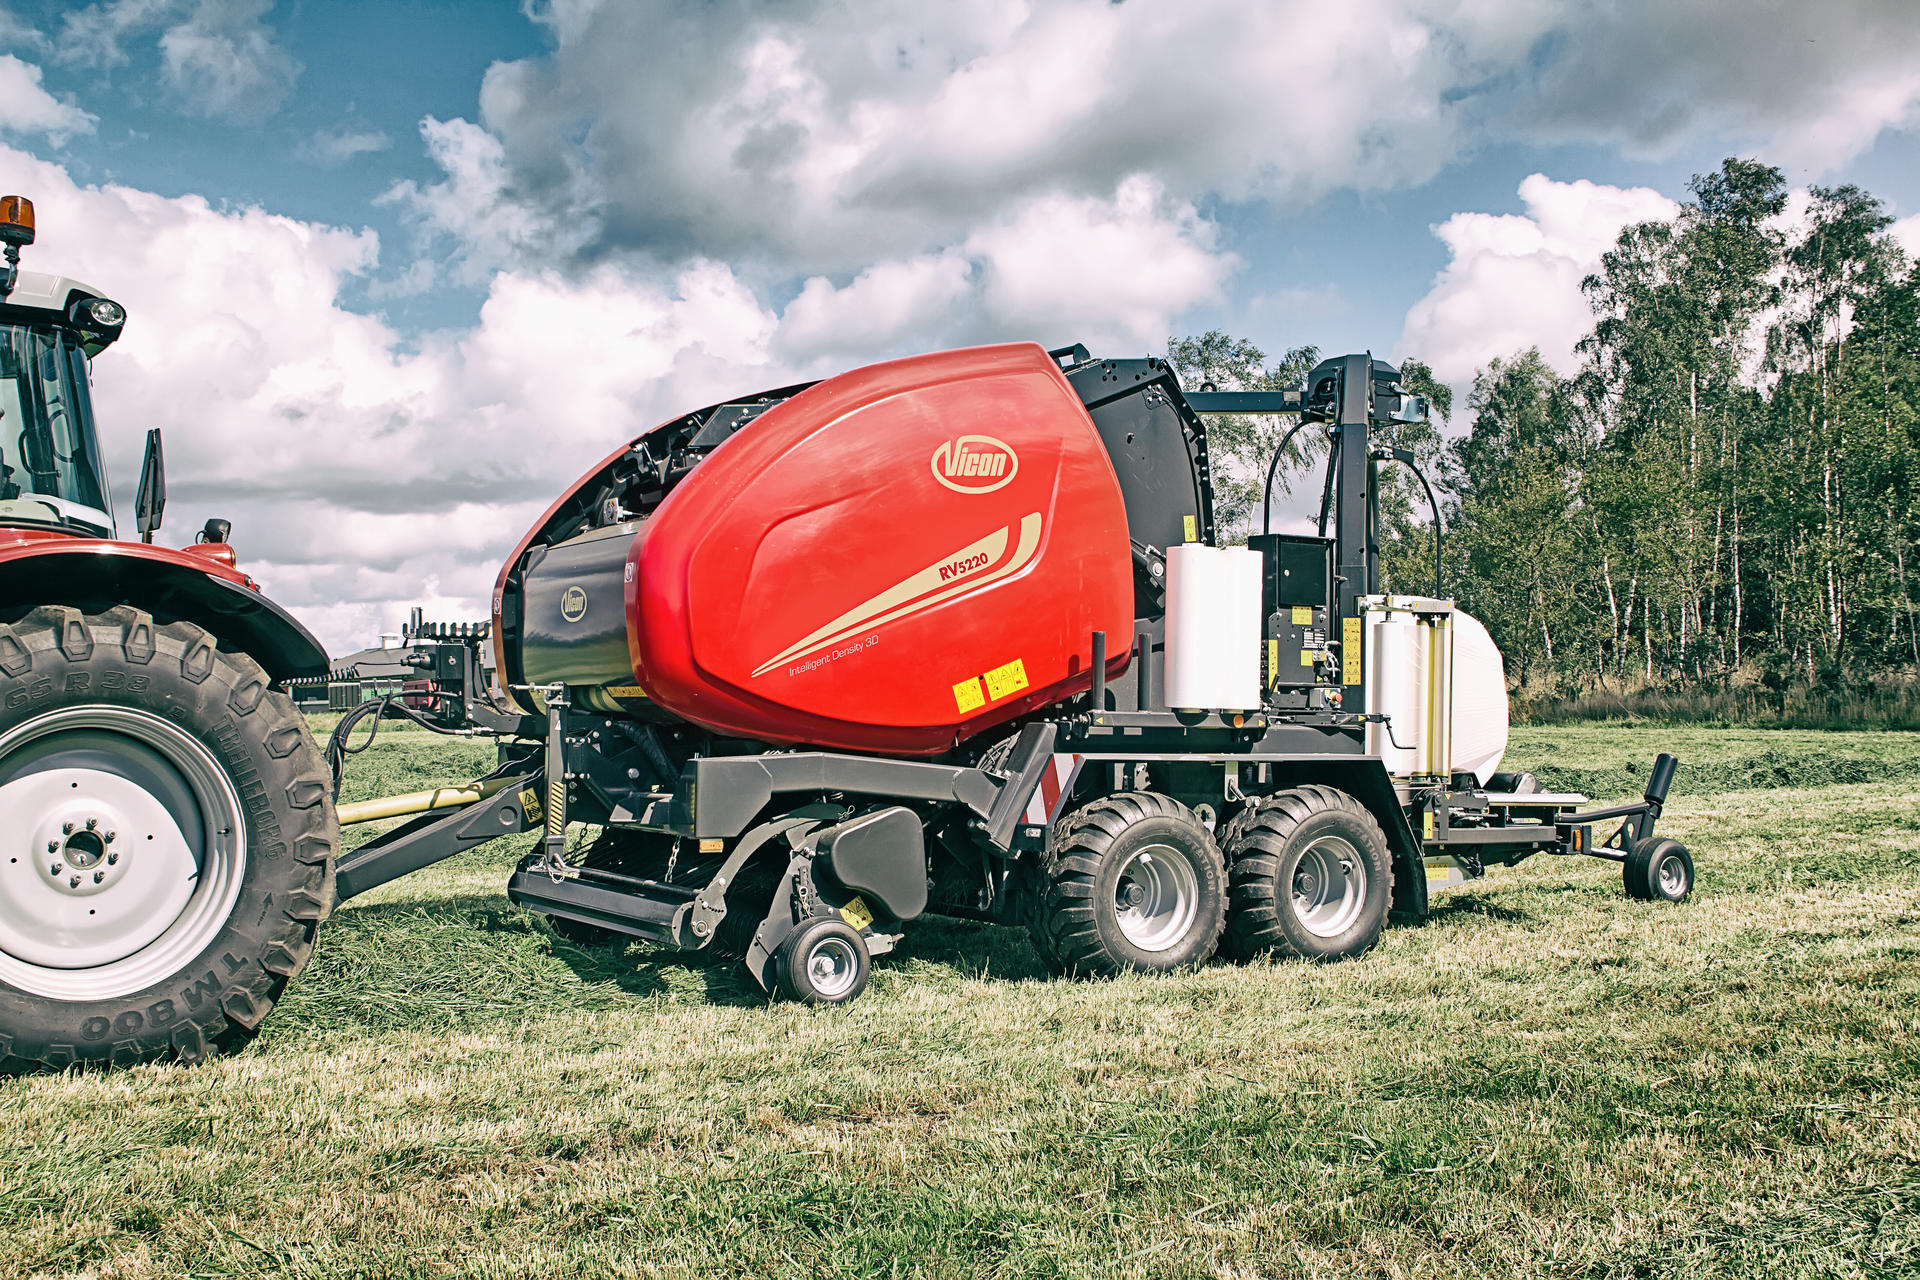 vicon rv 5216 5220 flexiwrap round balers vicon bale equipment rh uk vicon eu